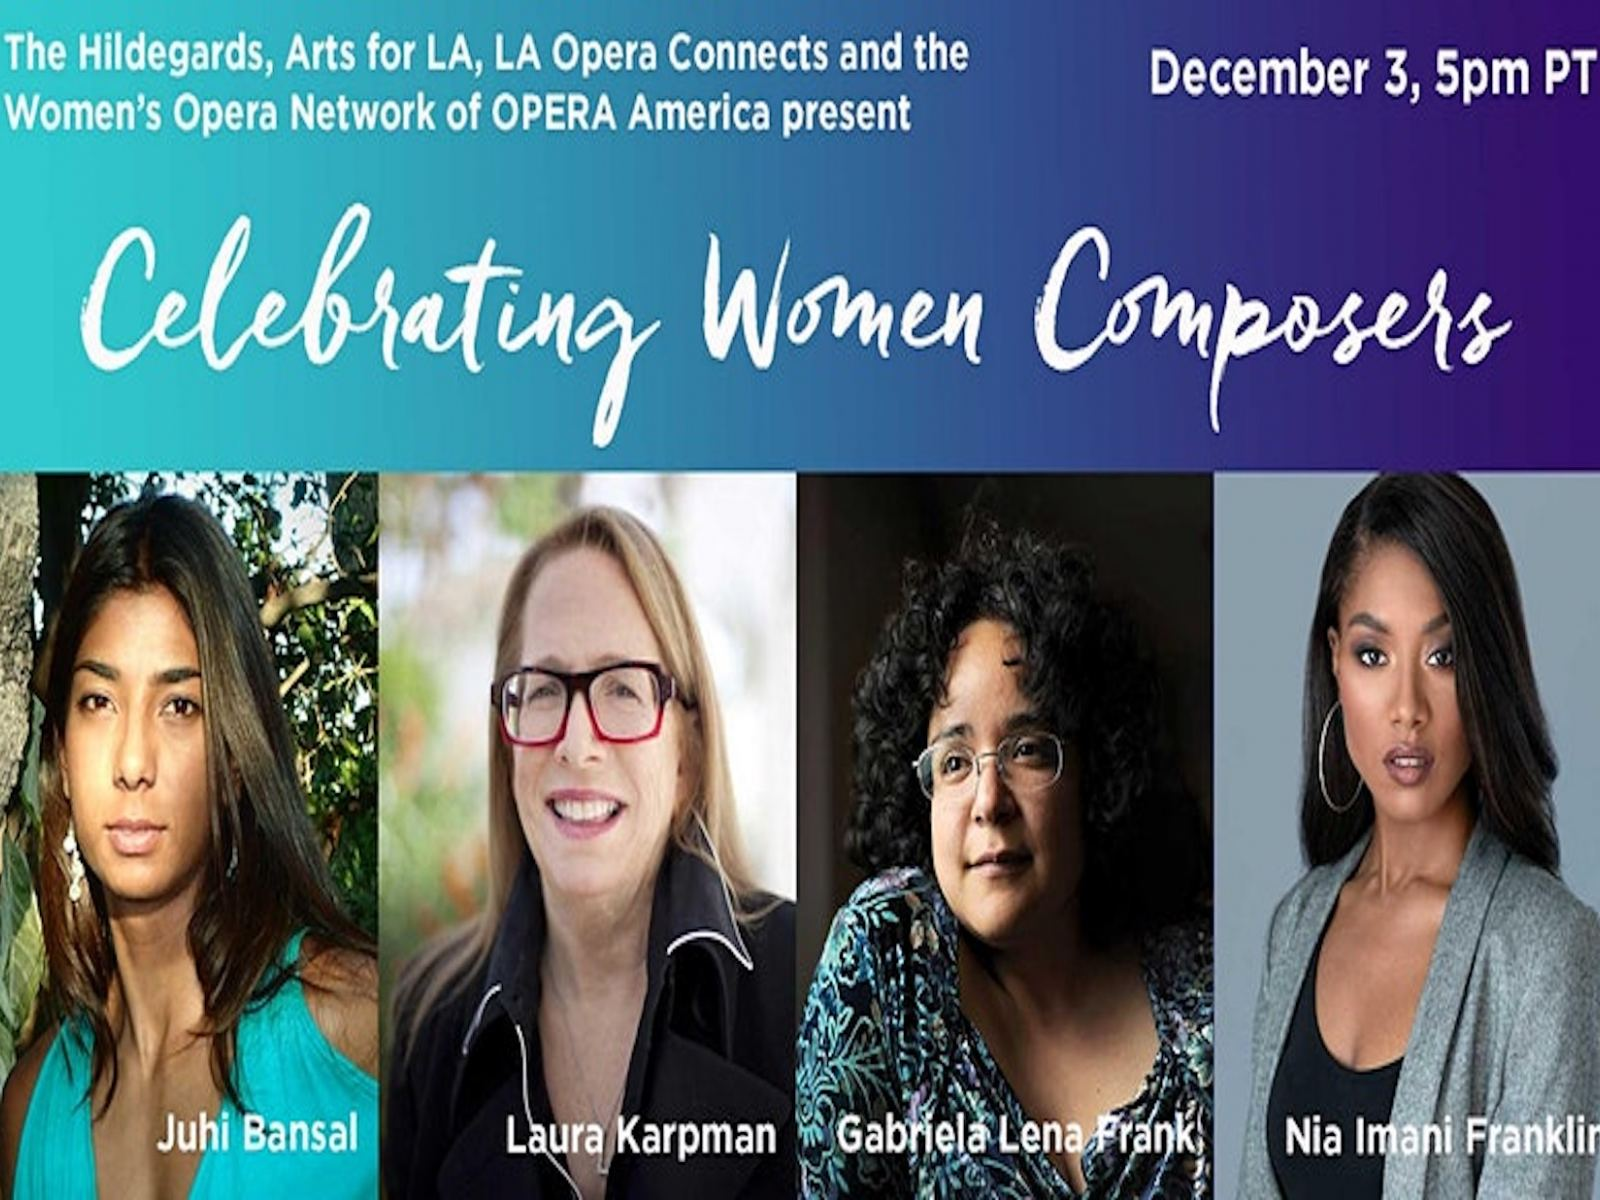 Join us Thursday, December 3, 2020 at 5pm PT for an intimate conversation with composers Laura Karpman, Gabriela Lena Frank, Juhi Bansal, & Nia Imani Franklin.